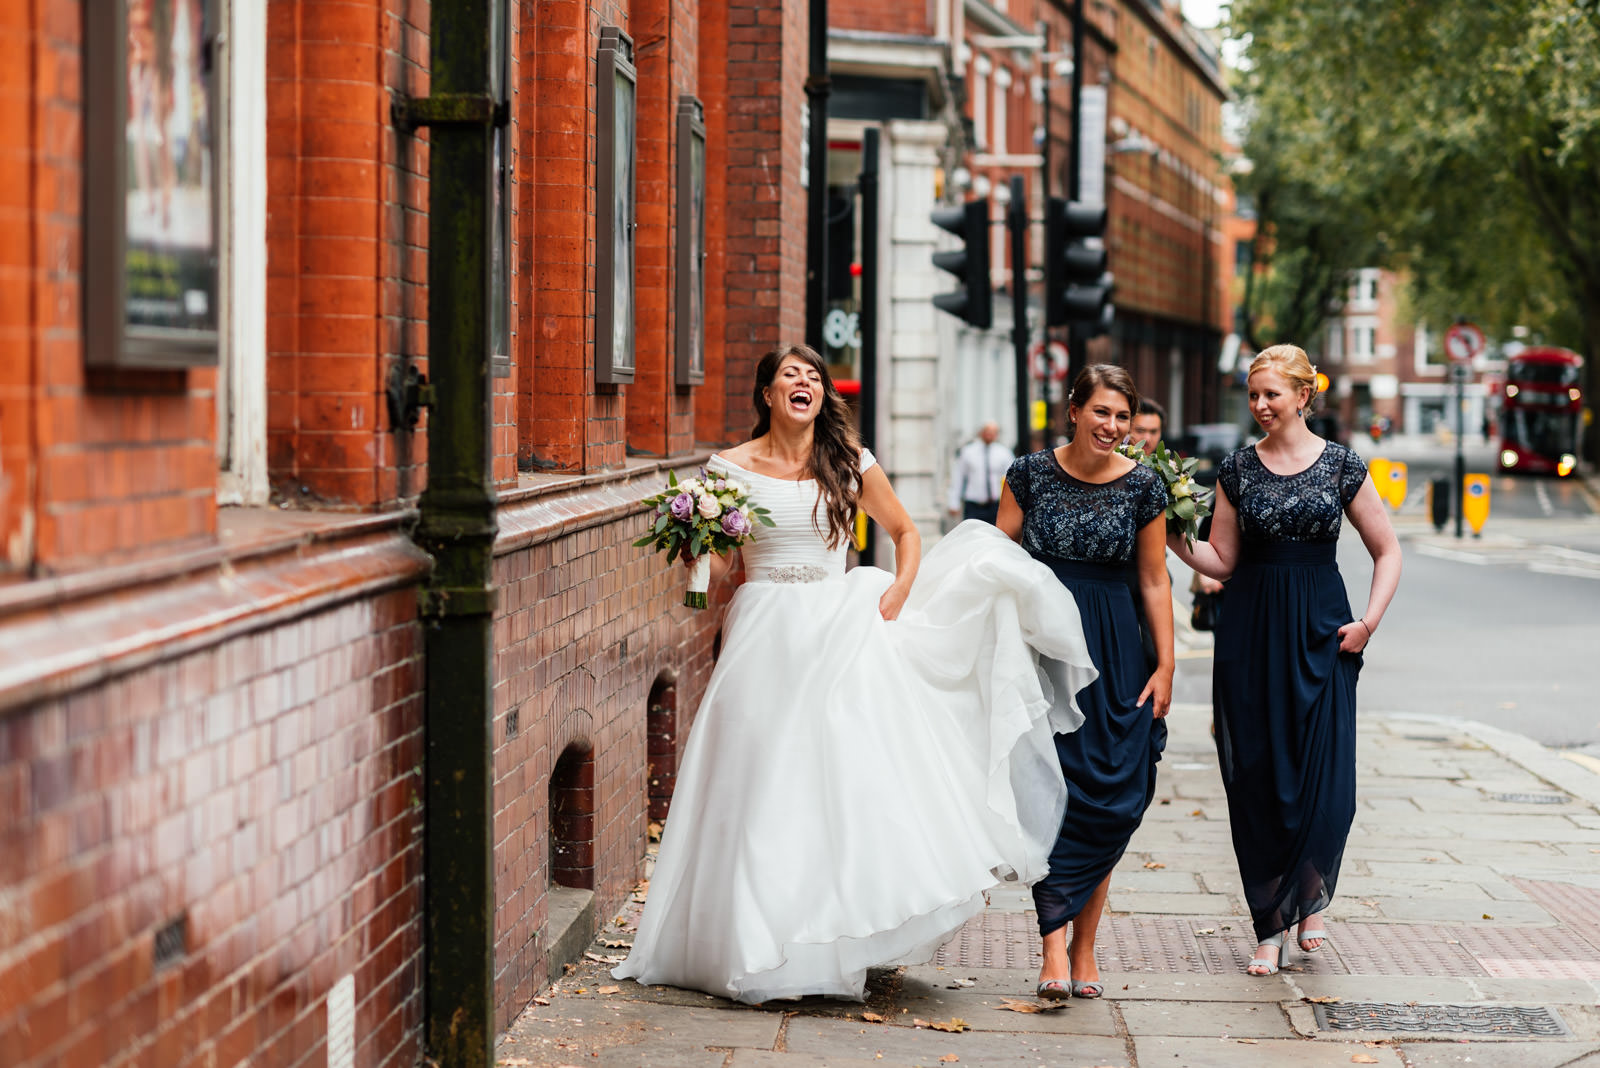 bride and bridesmaids laughing and walking